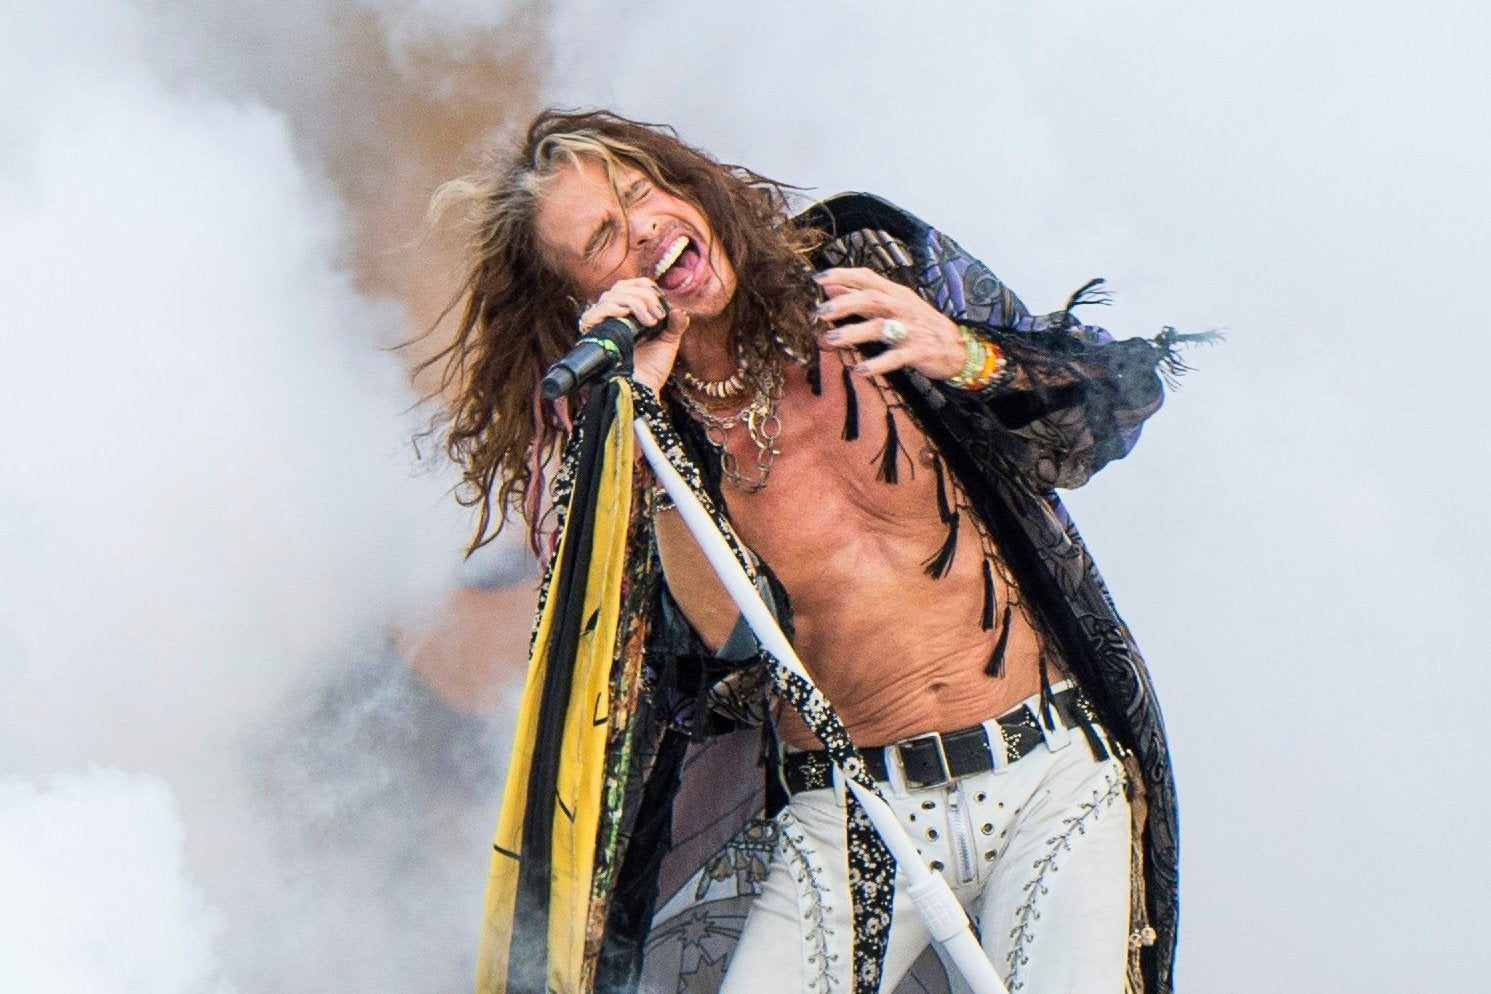 Happy Birthday Steven Tyler Born on 26 March 1948 -72 yrs old today